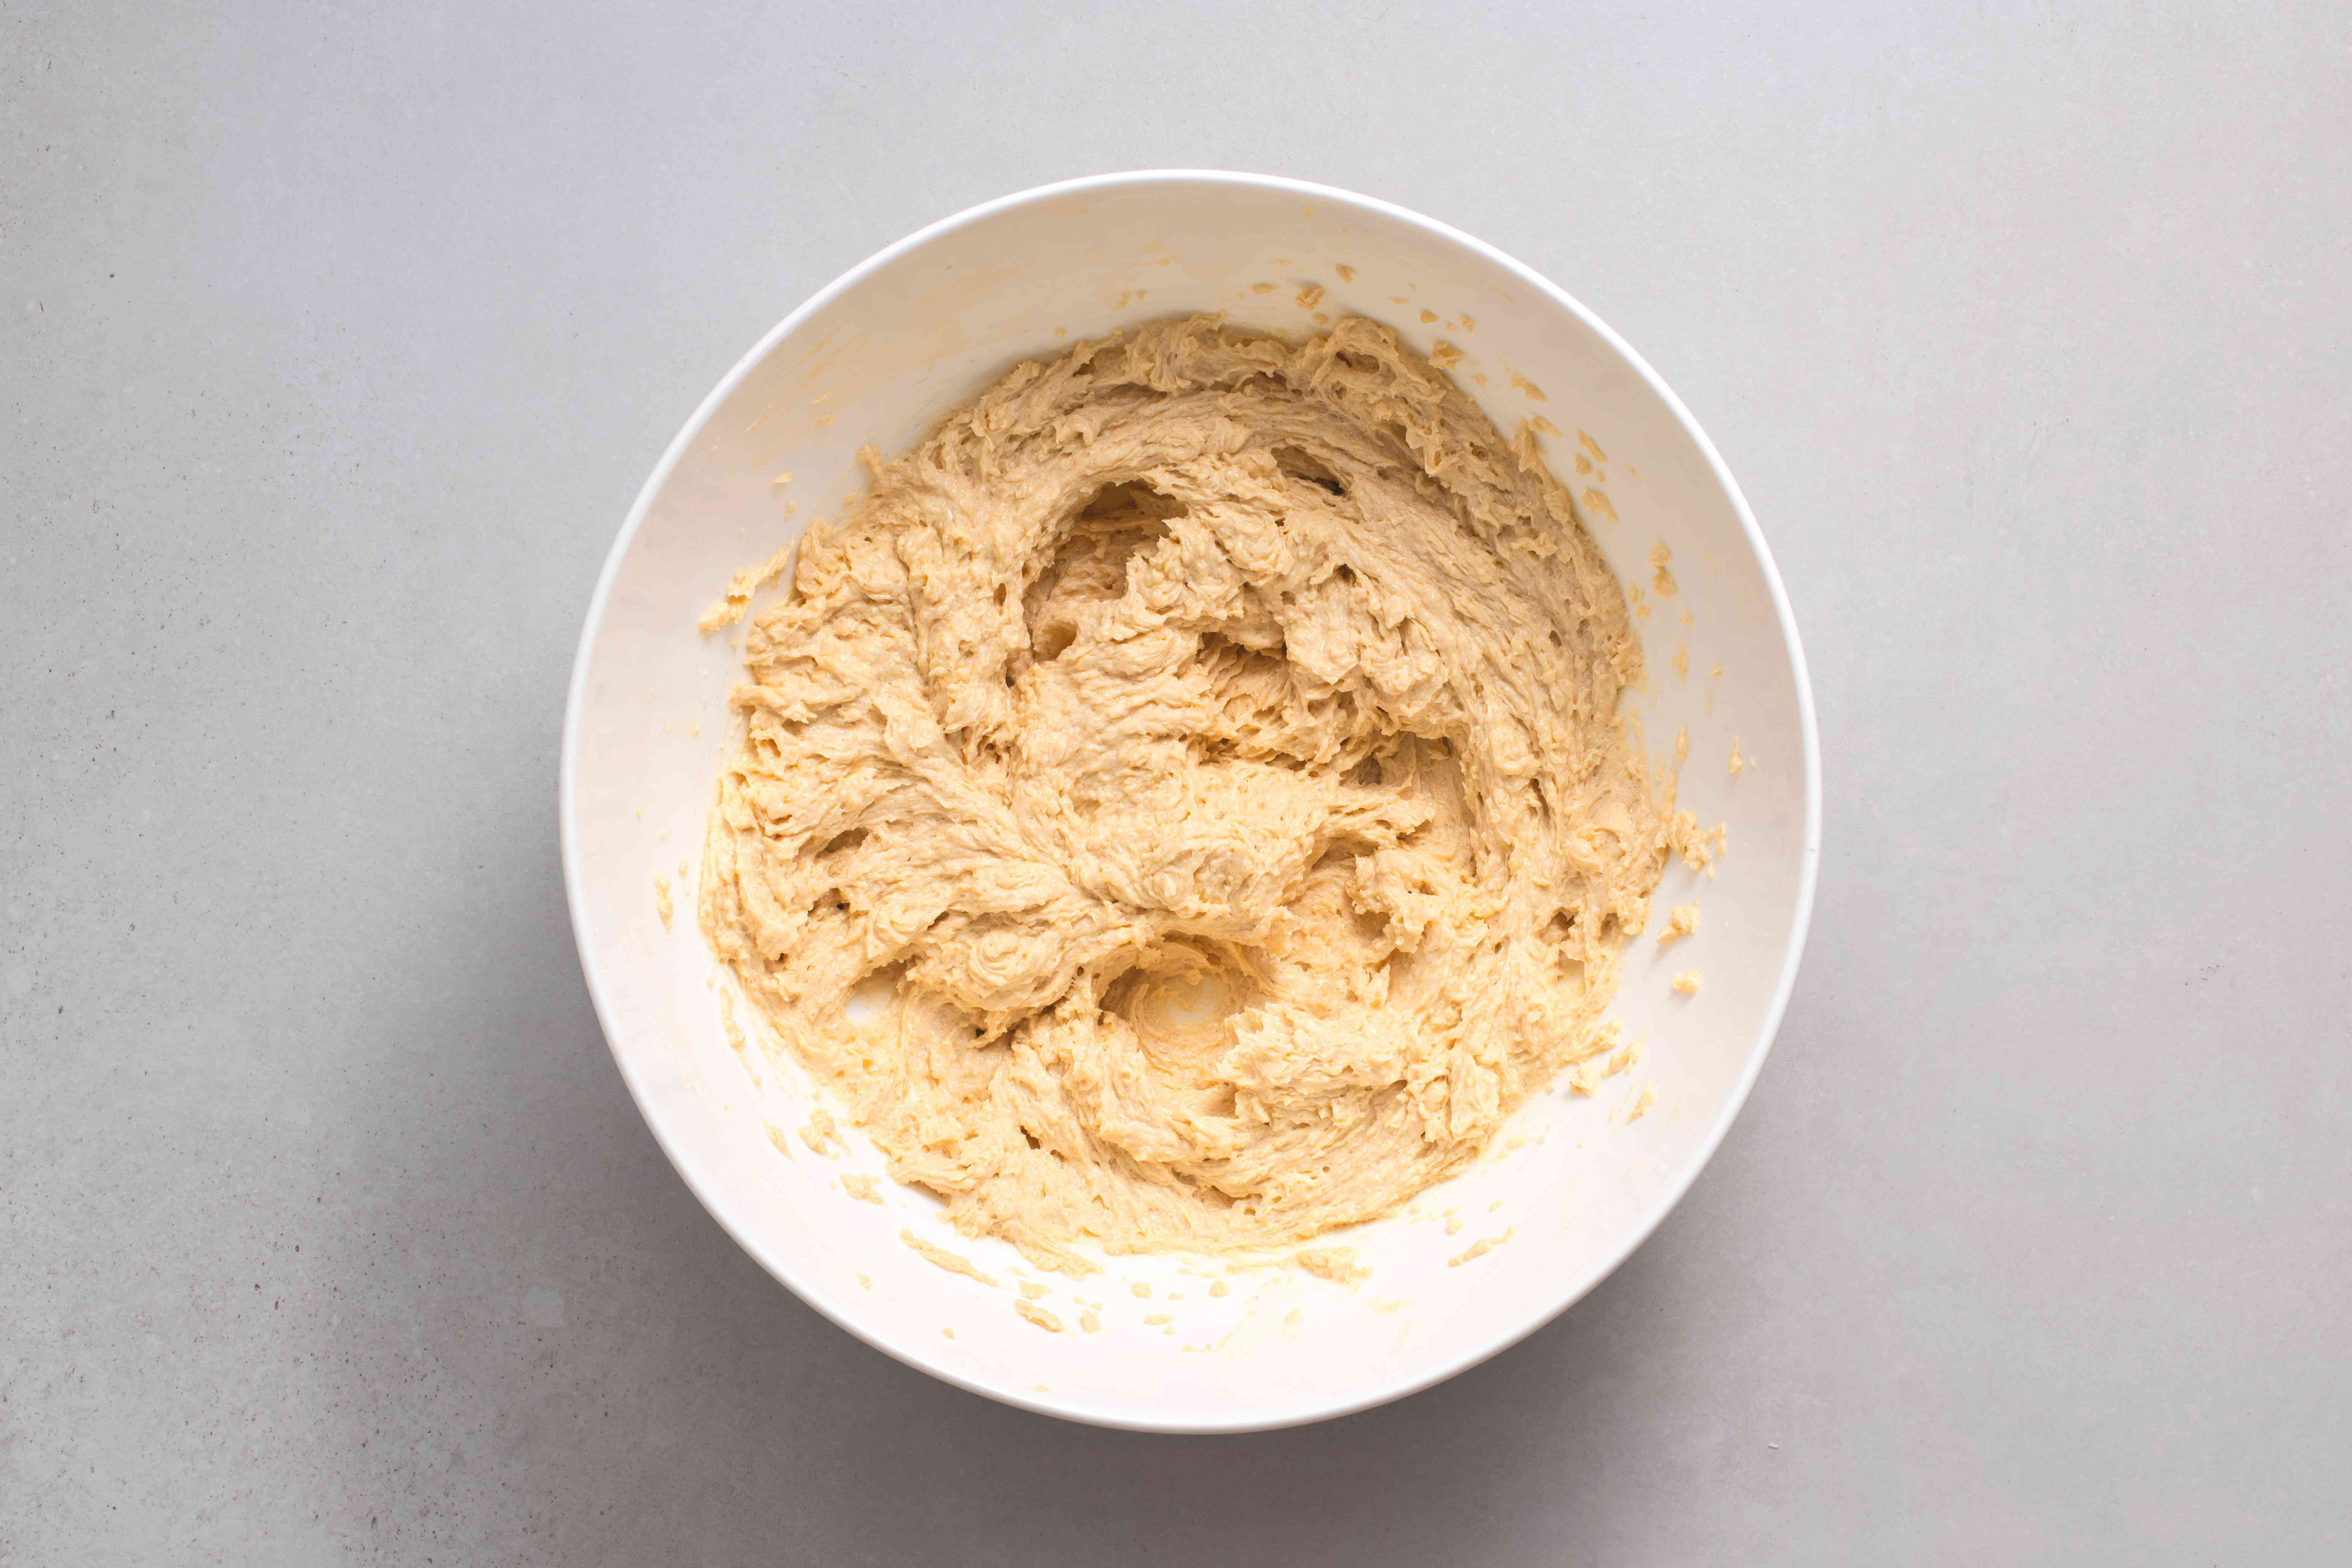 eggs and vanilla added to the cookie batter in the bowl